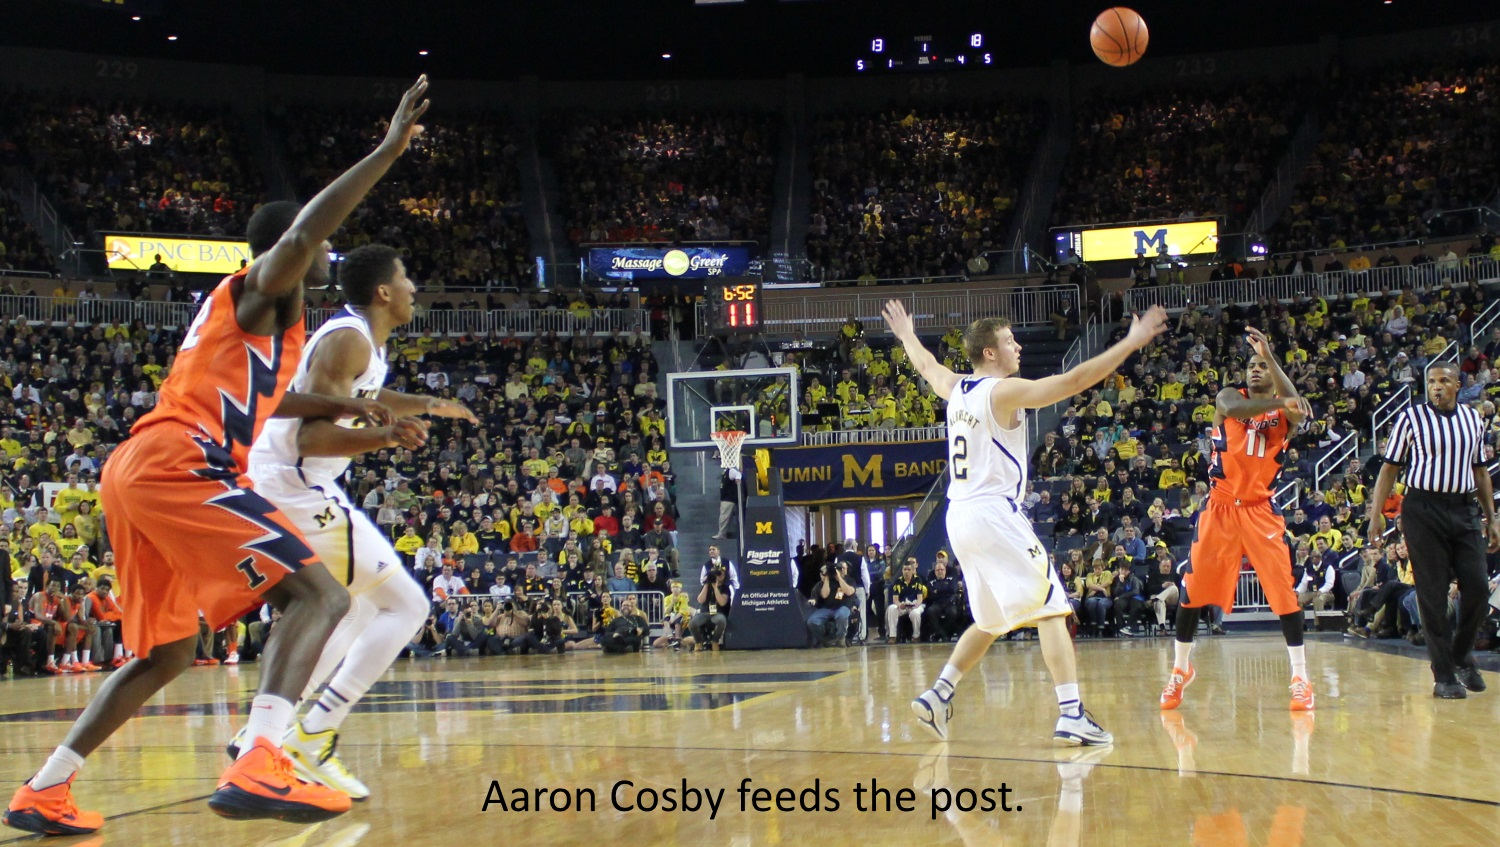 Aaron Cosby feeds the post